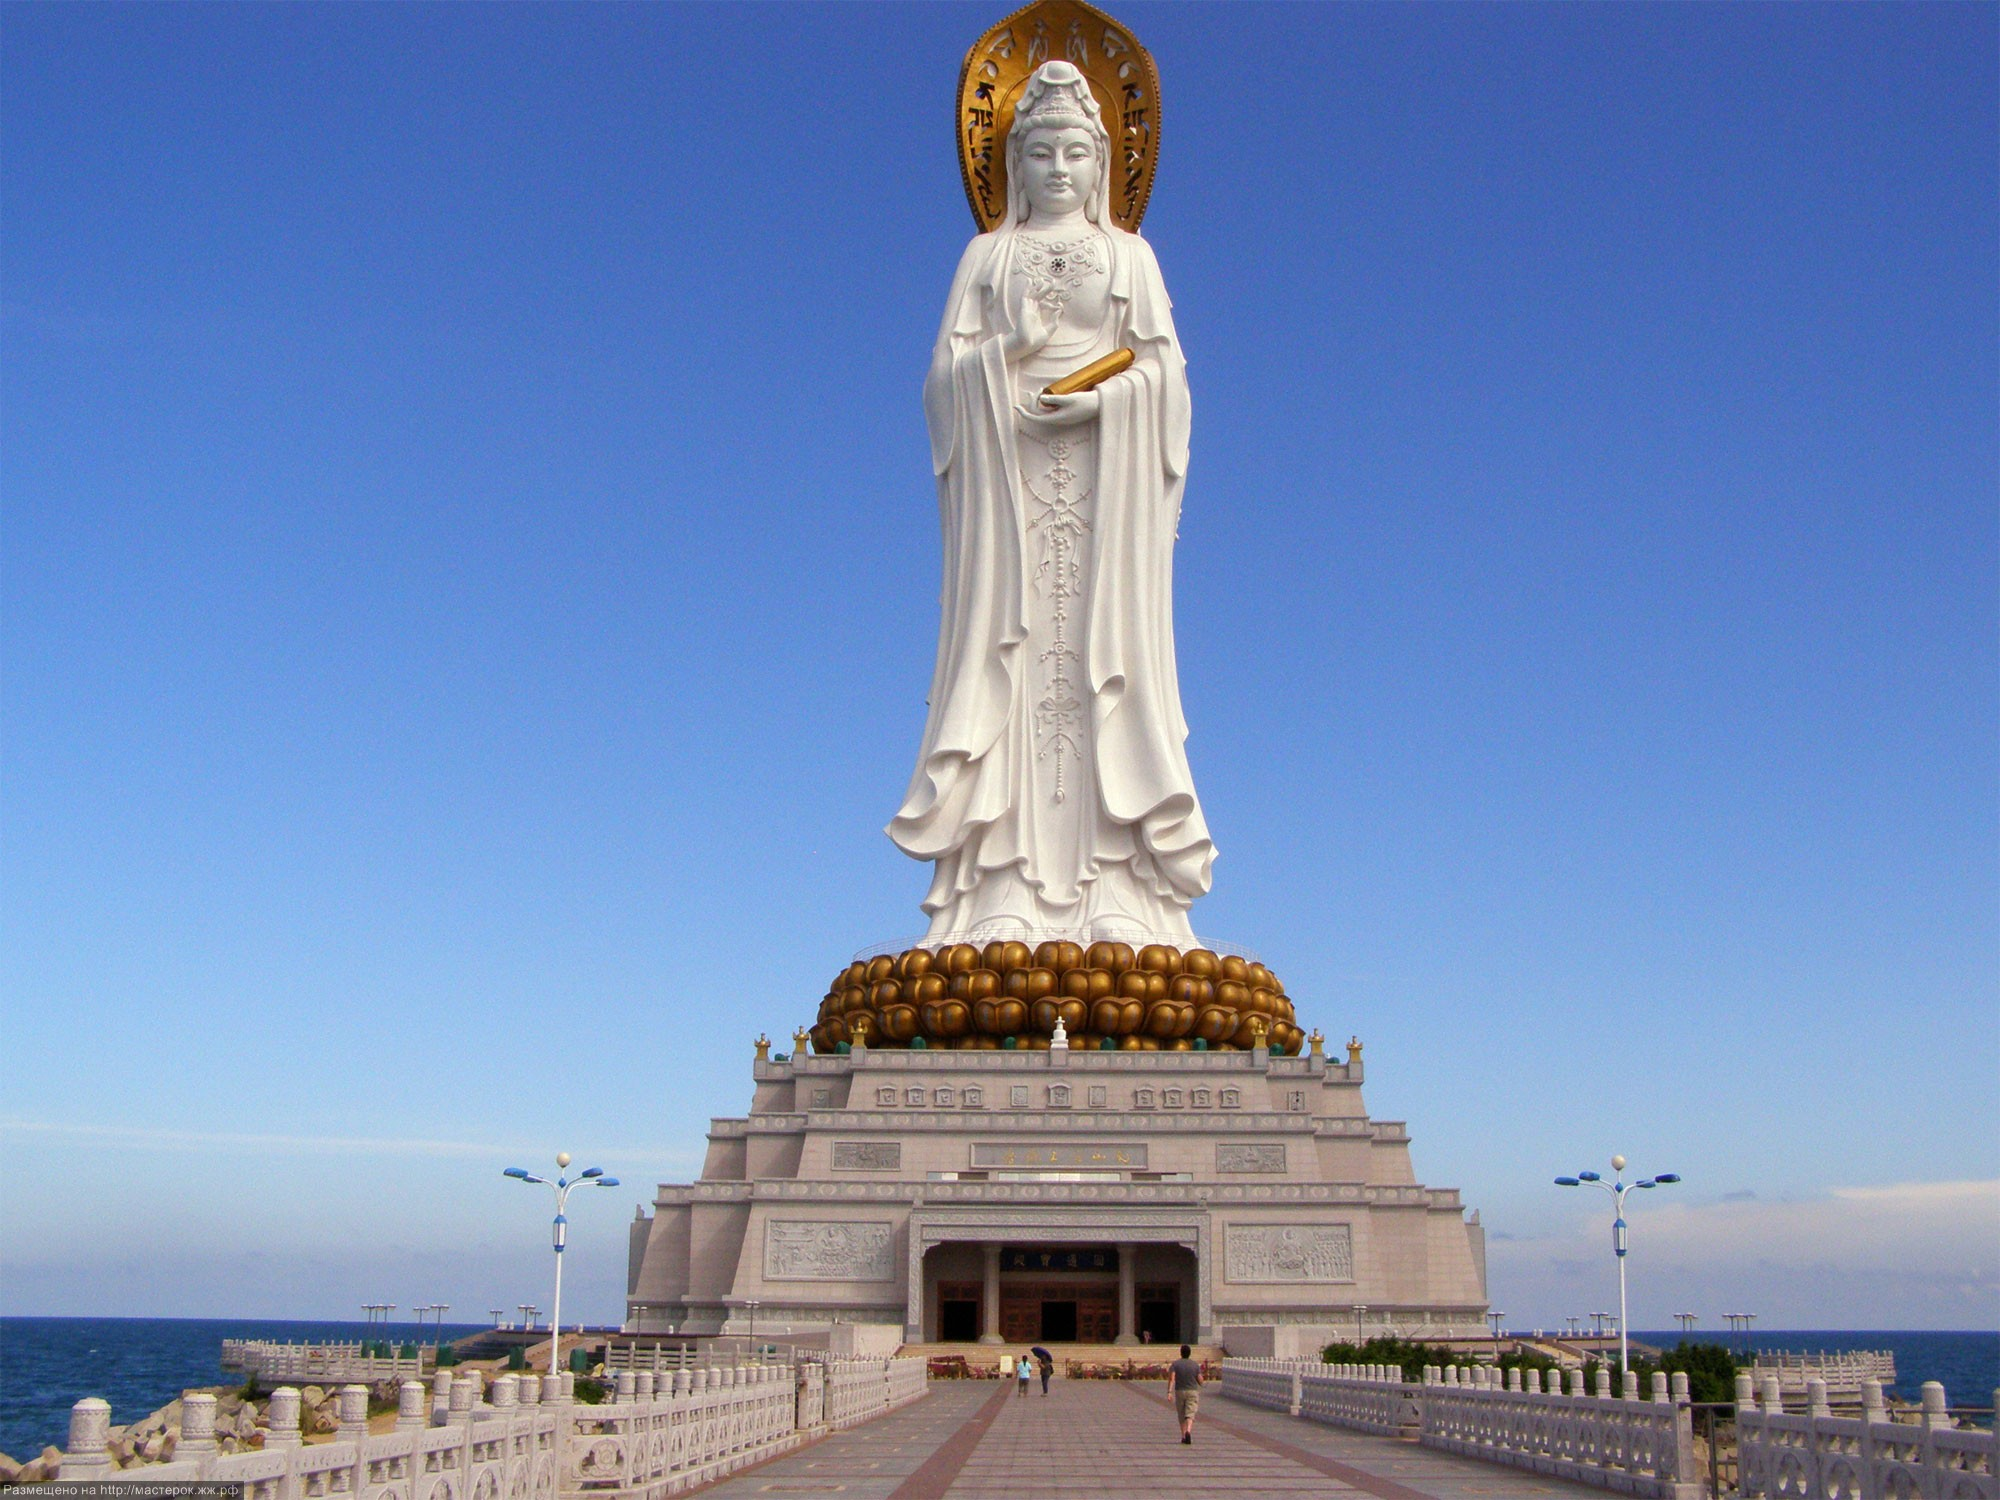 The majestic tower of Kwan Yin.